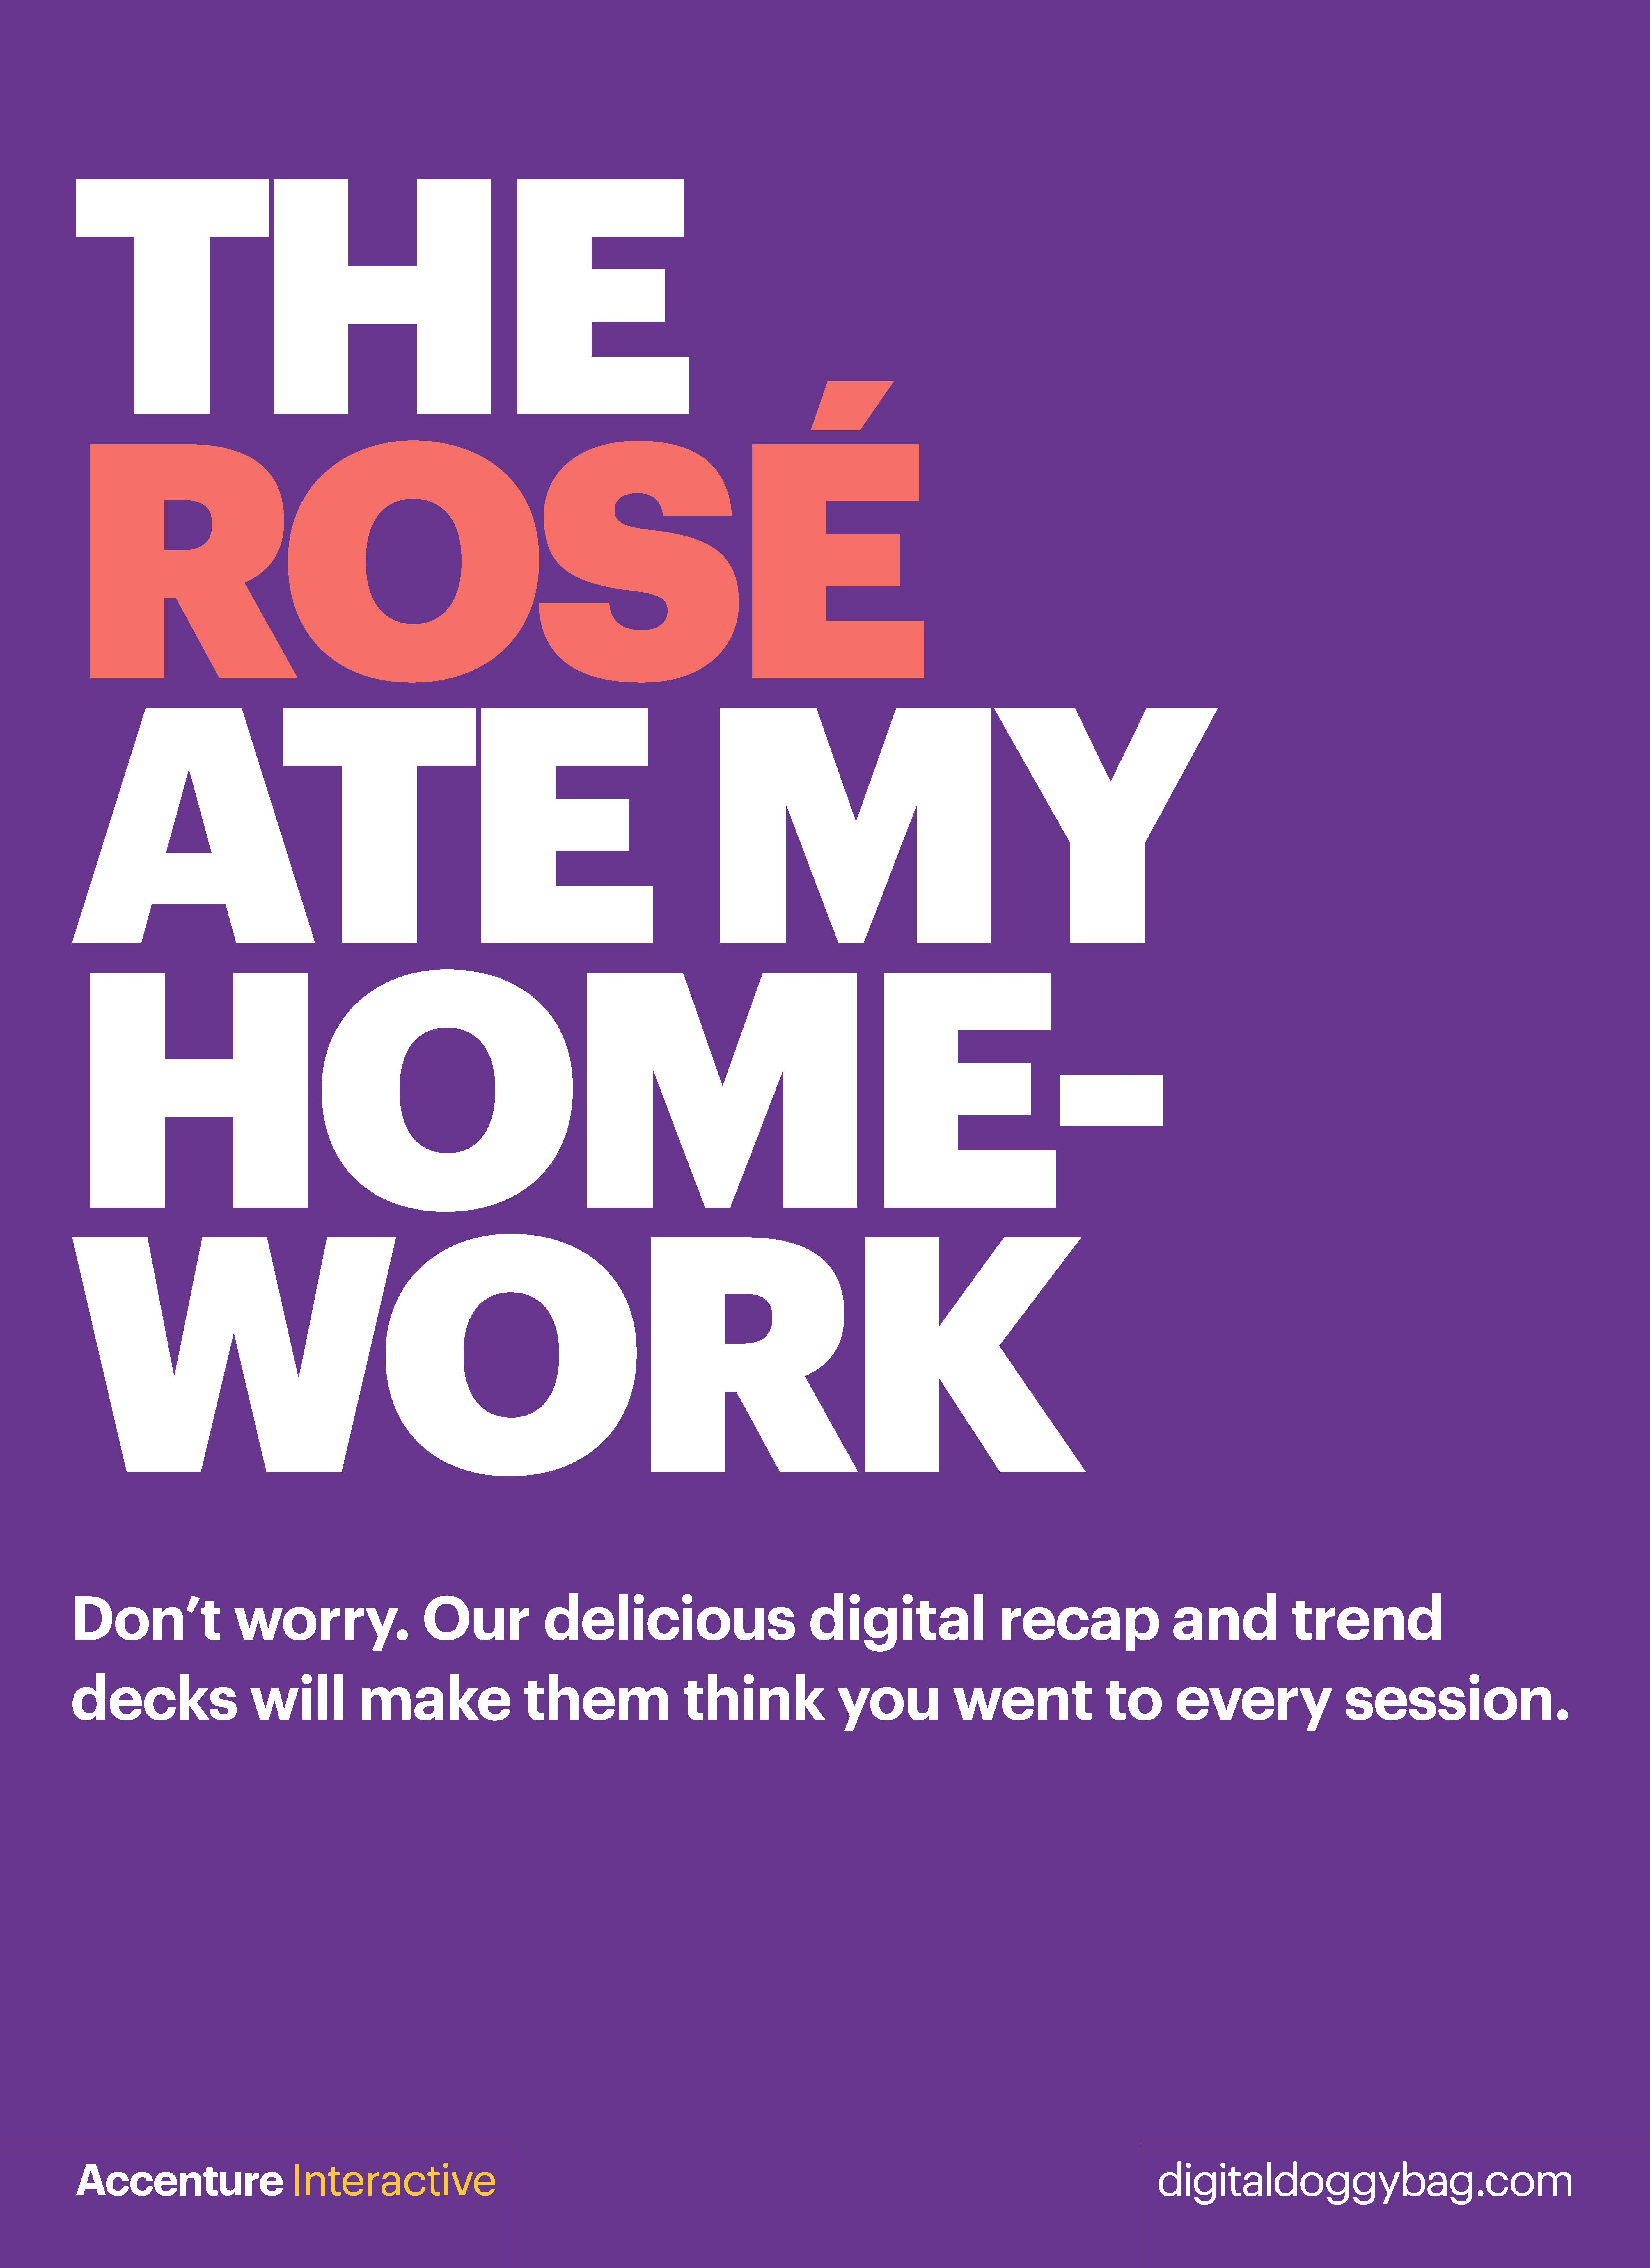 Accenture Interactive partners with Cannes Lions to provide all delegates with a free Digital Doggy Bag to enhance the Festival experience